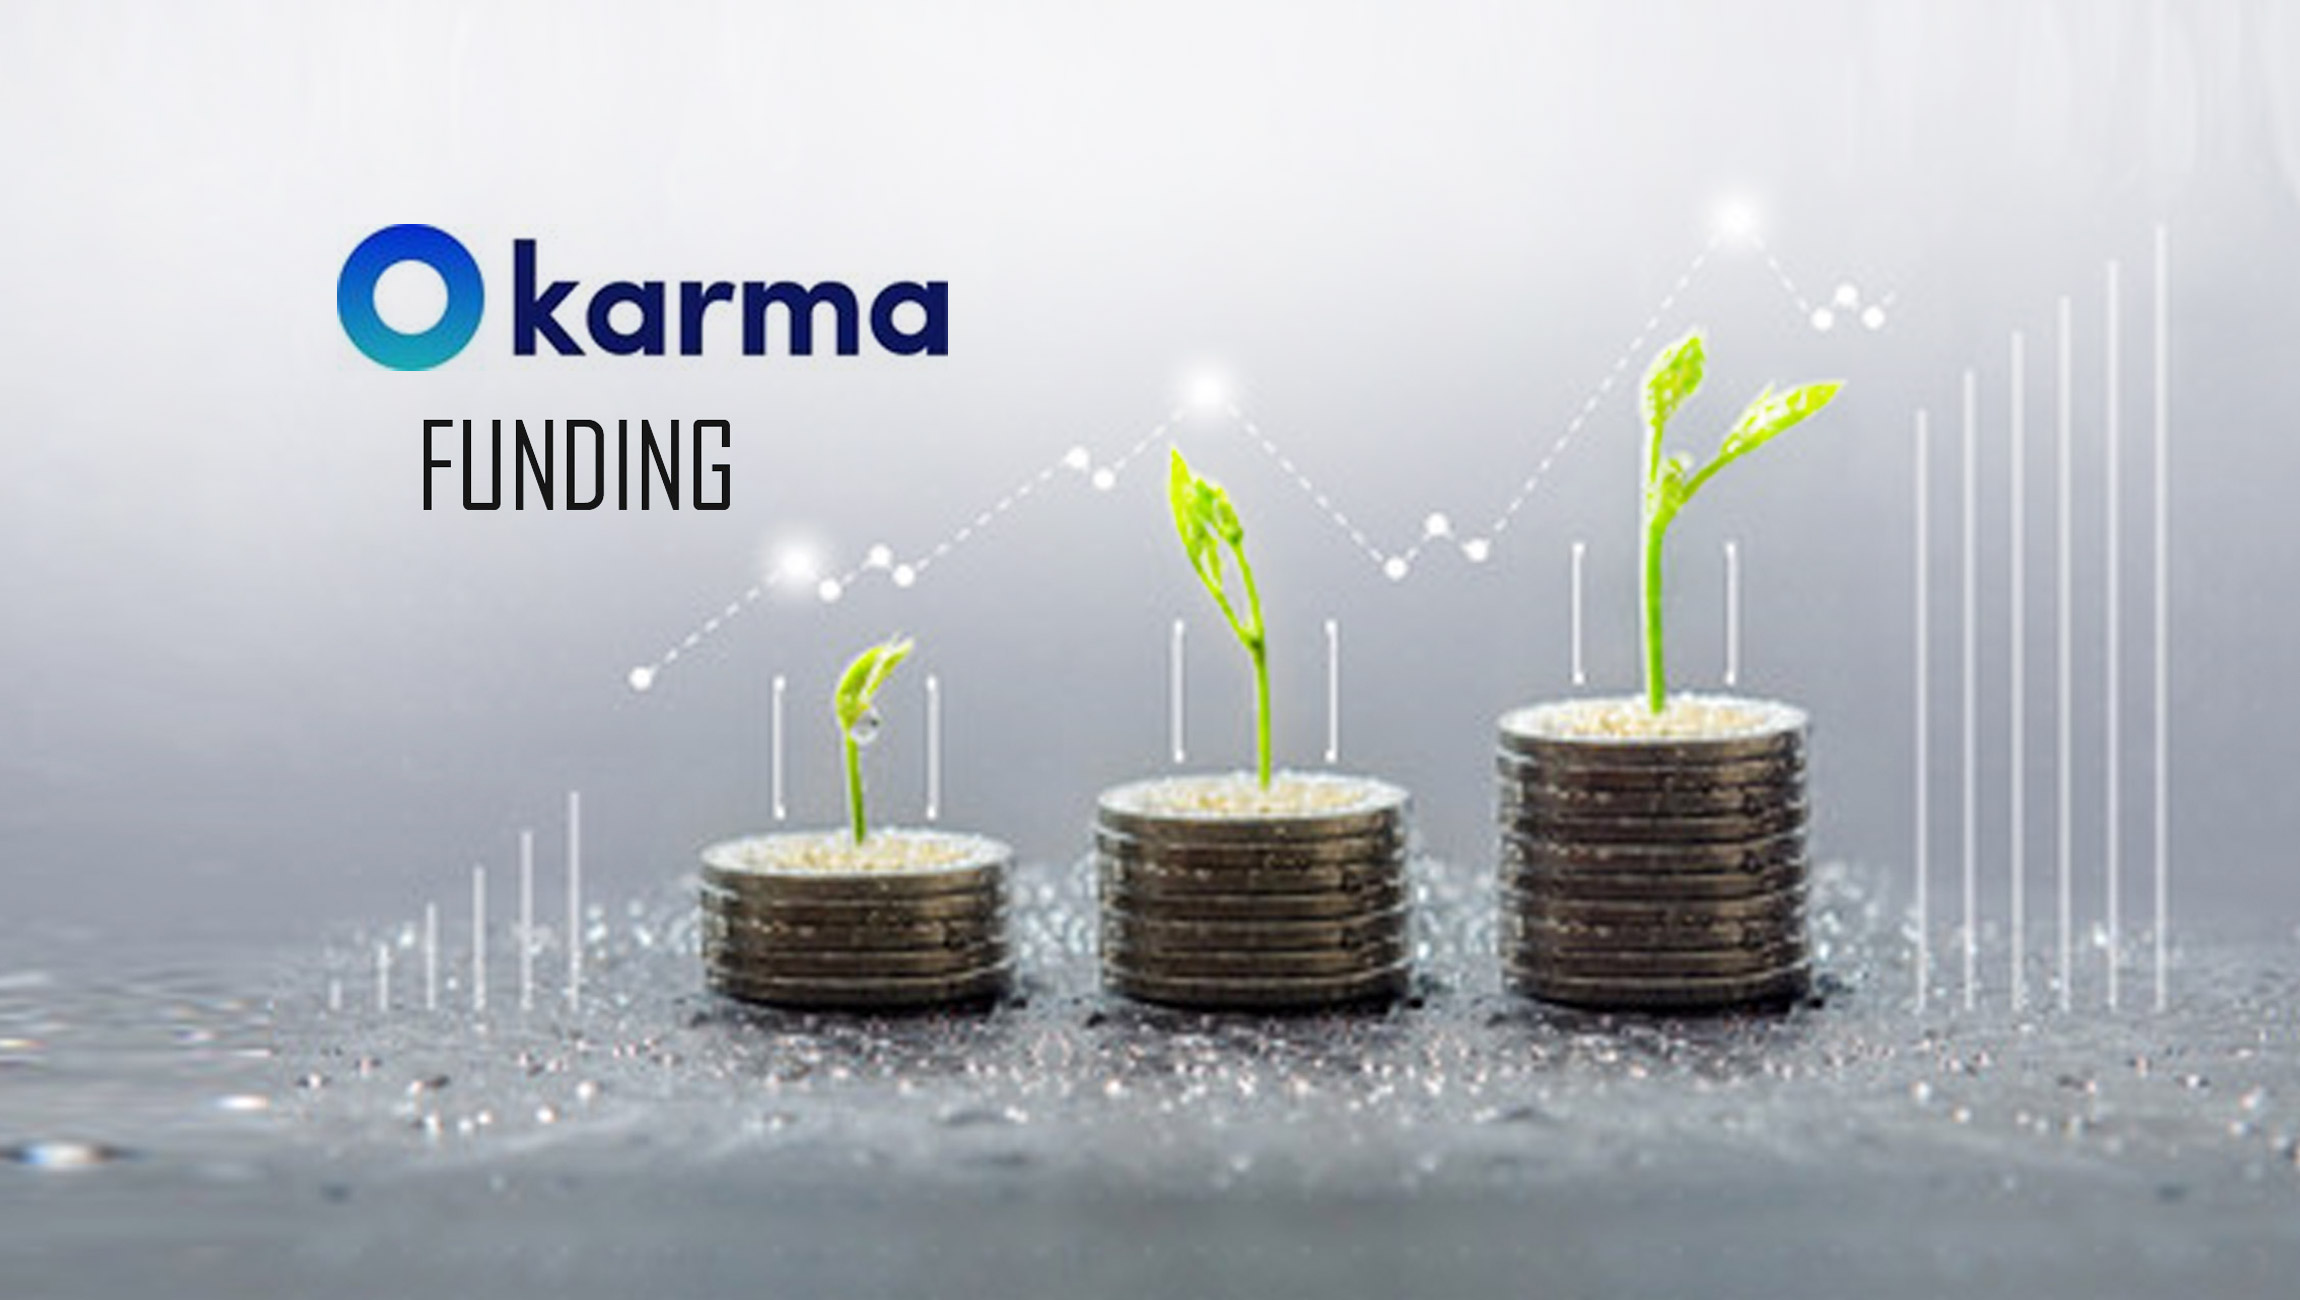 Karma---The-Browser-Based-AI-Shopping-Assistant---Closes-_25M-Series-A-Funding-Round-Led-By-Target-Global-And-Moretech-Ventures